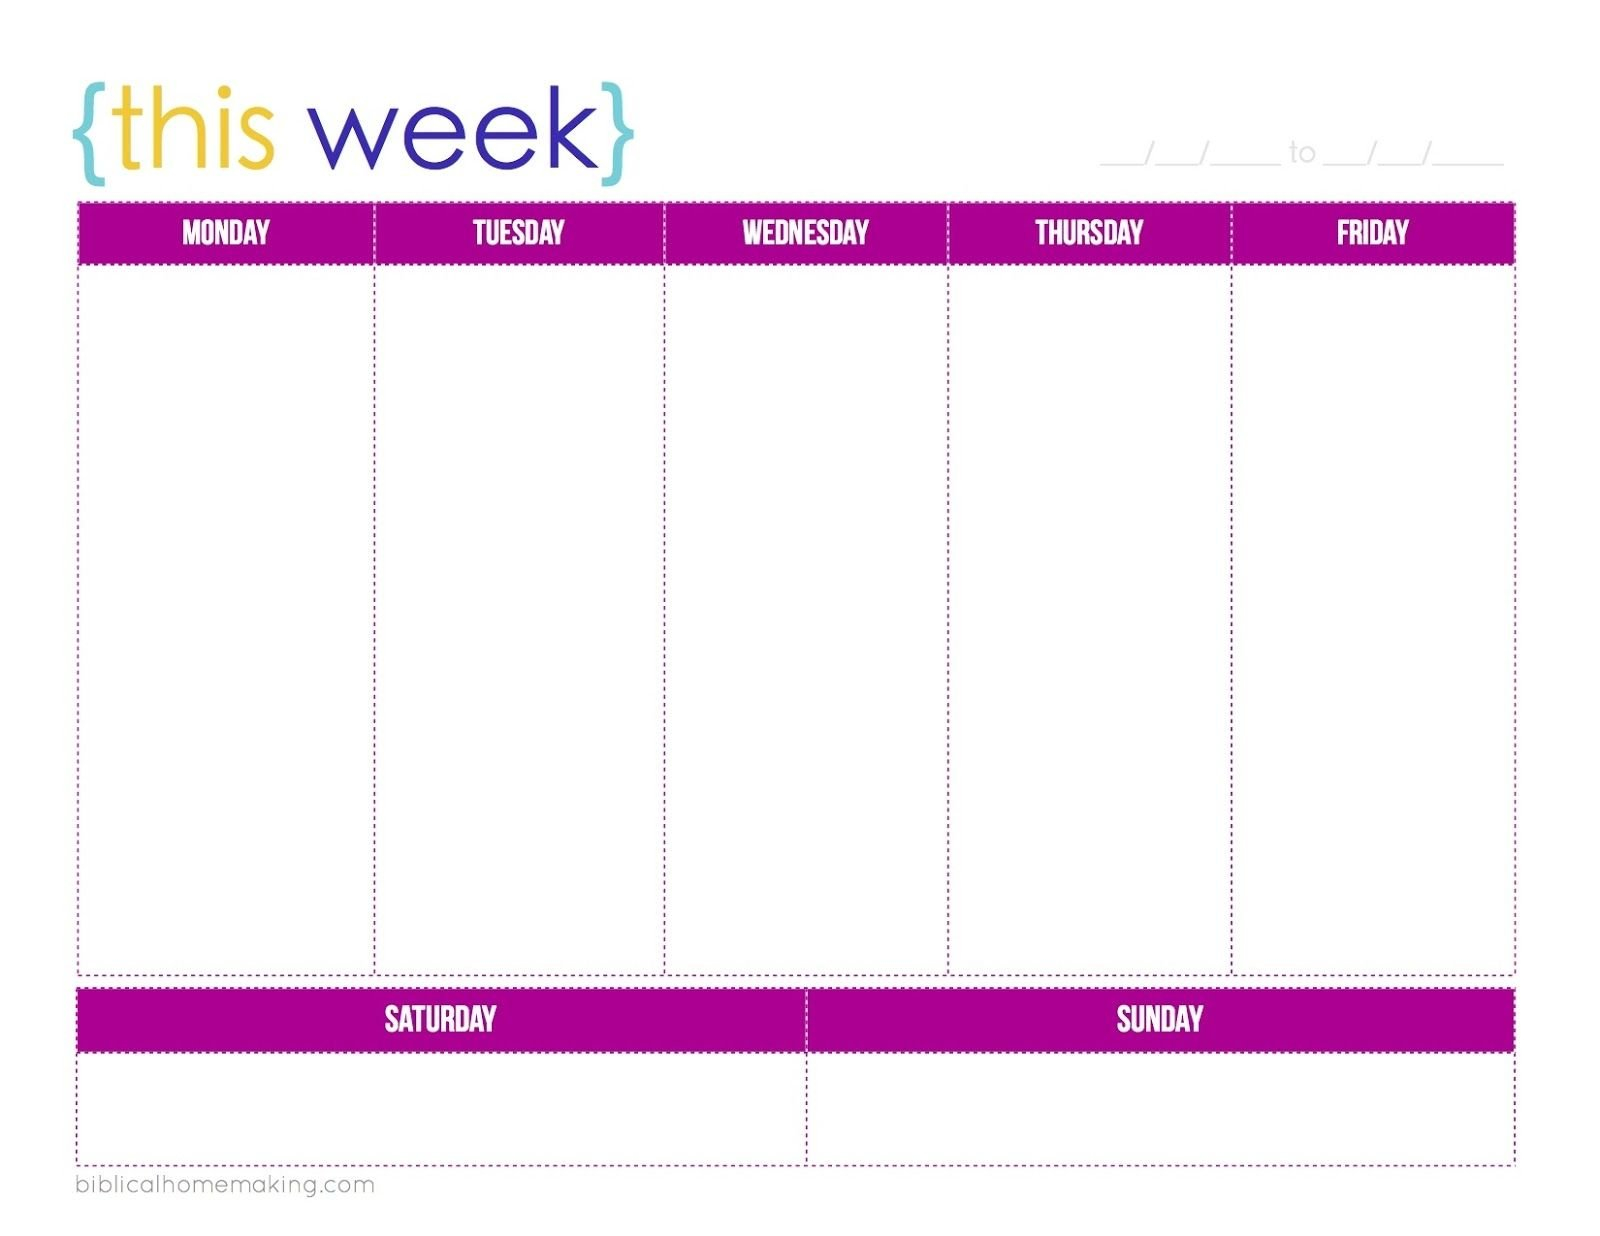 This Week A Free Weekly Planner Printable Biblical Printable Calendar For 1 Week